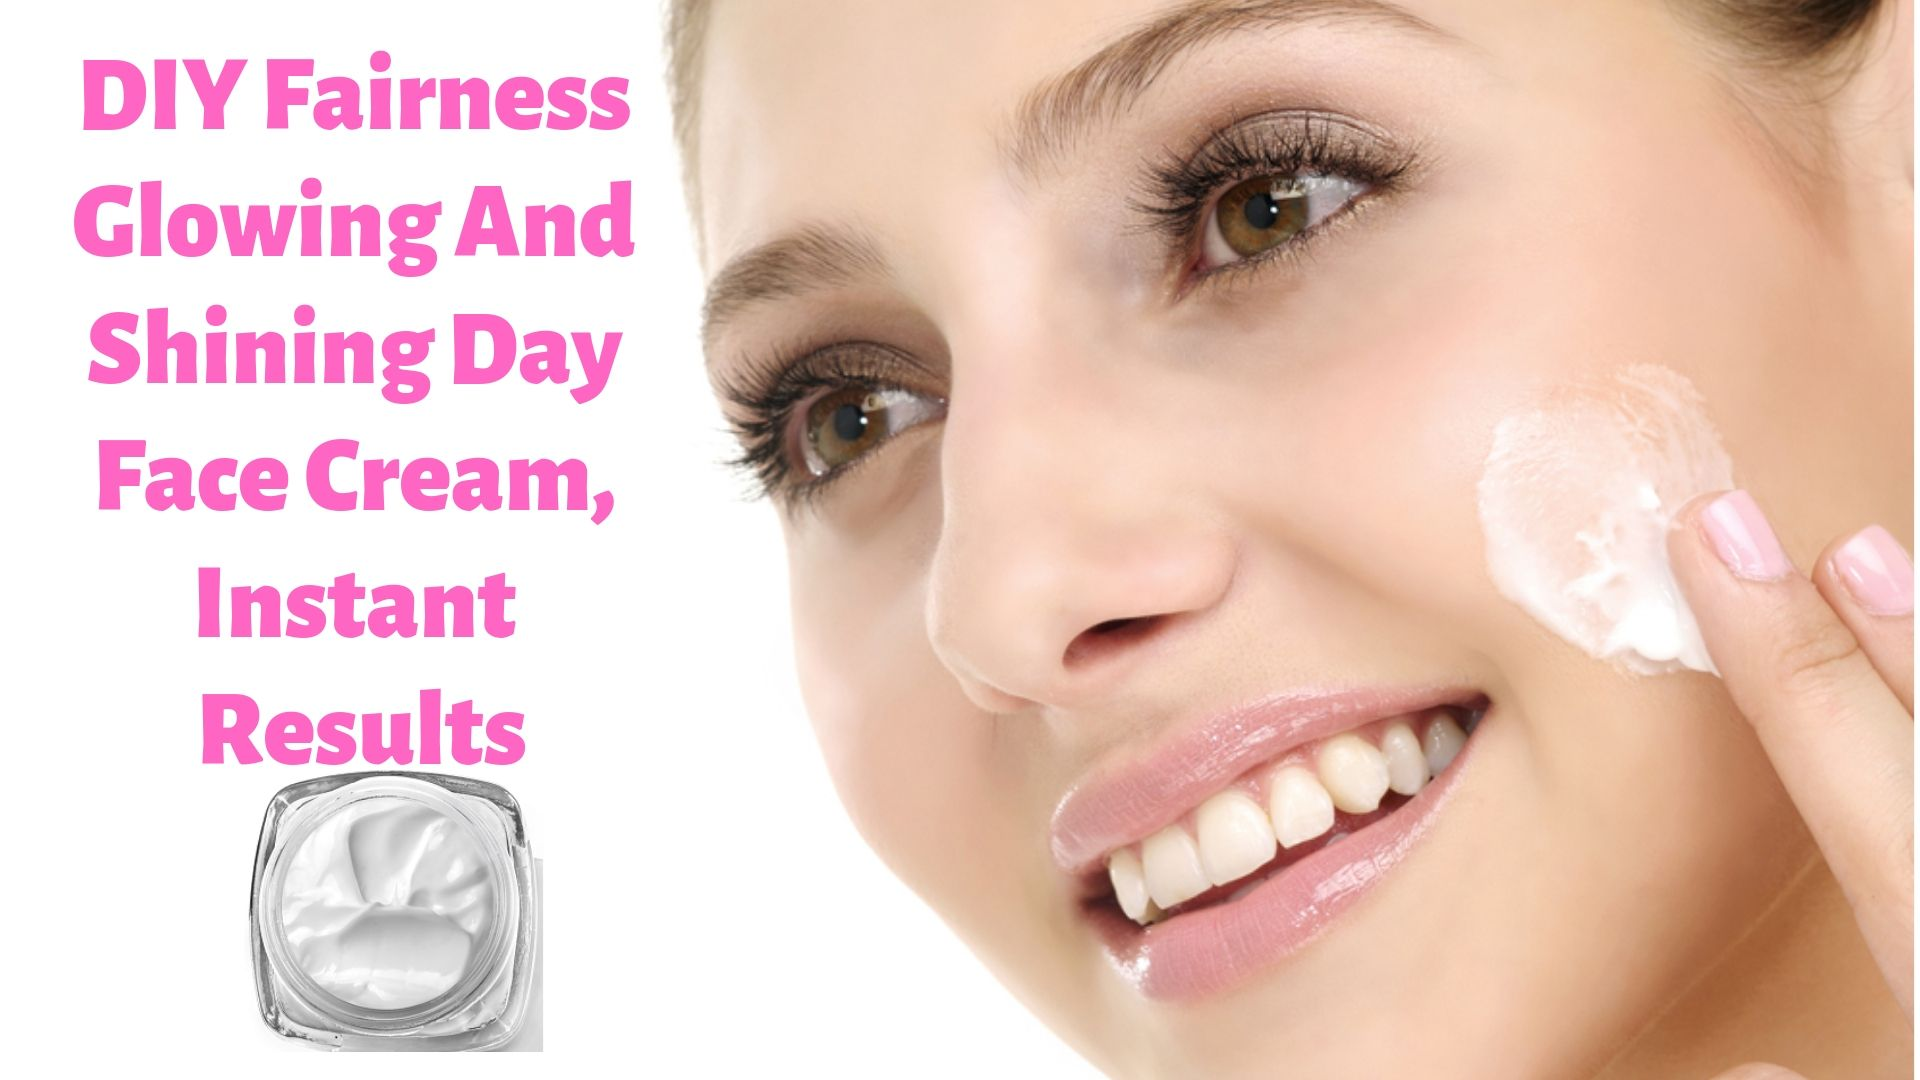 DIY Fairness Glowing And Shining Day Face Cream, Instant Results